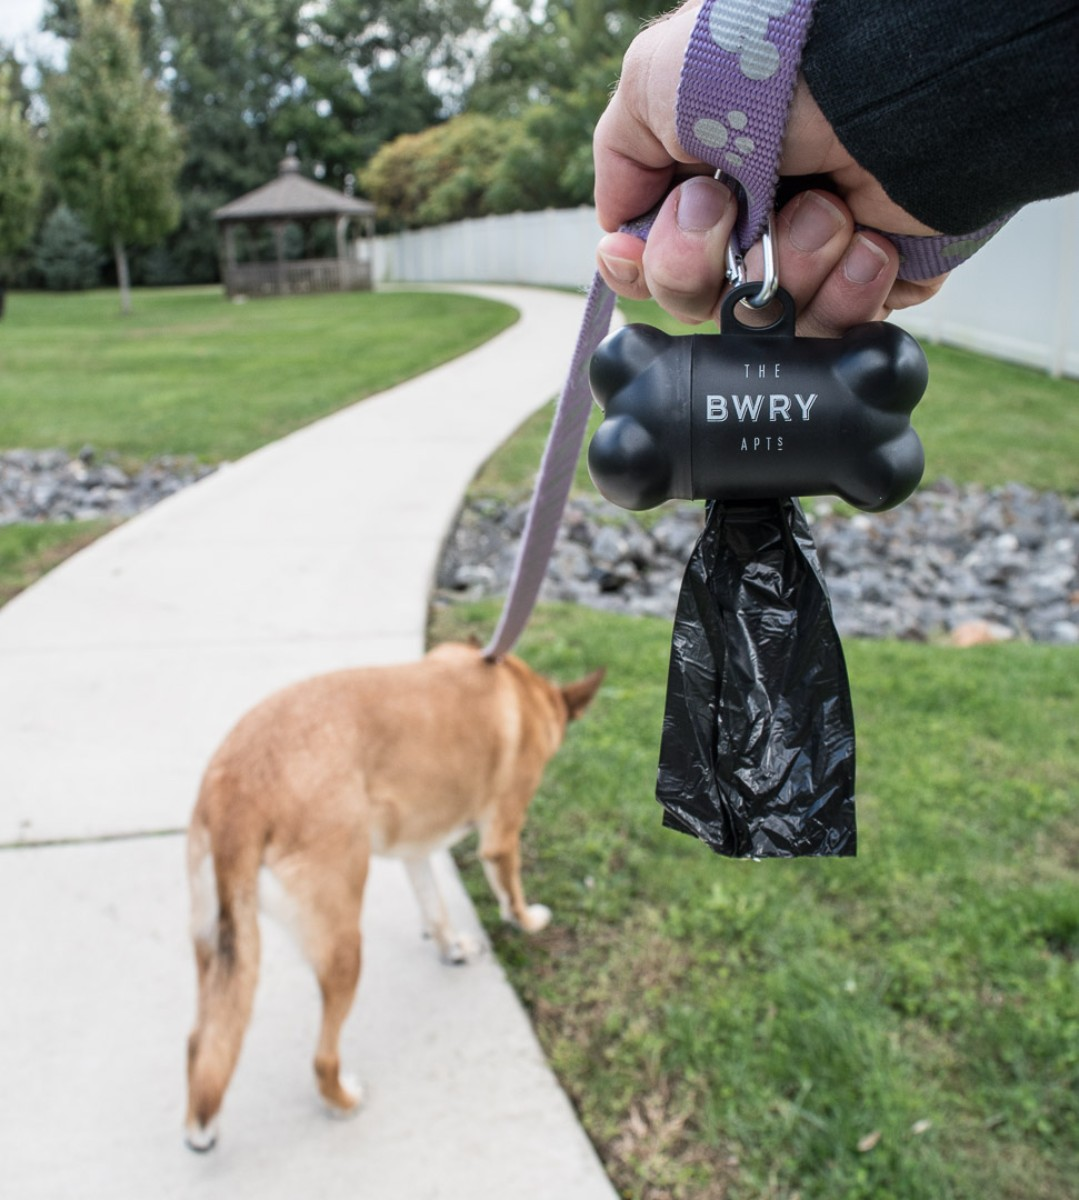 Imprinted dog waste bag holder